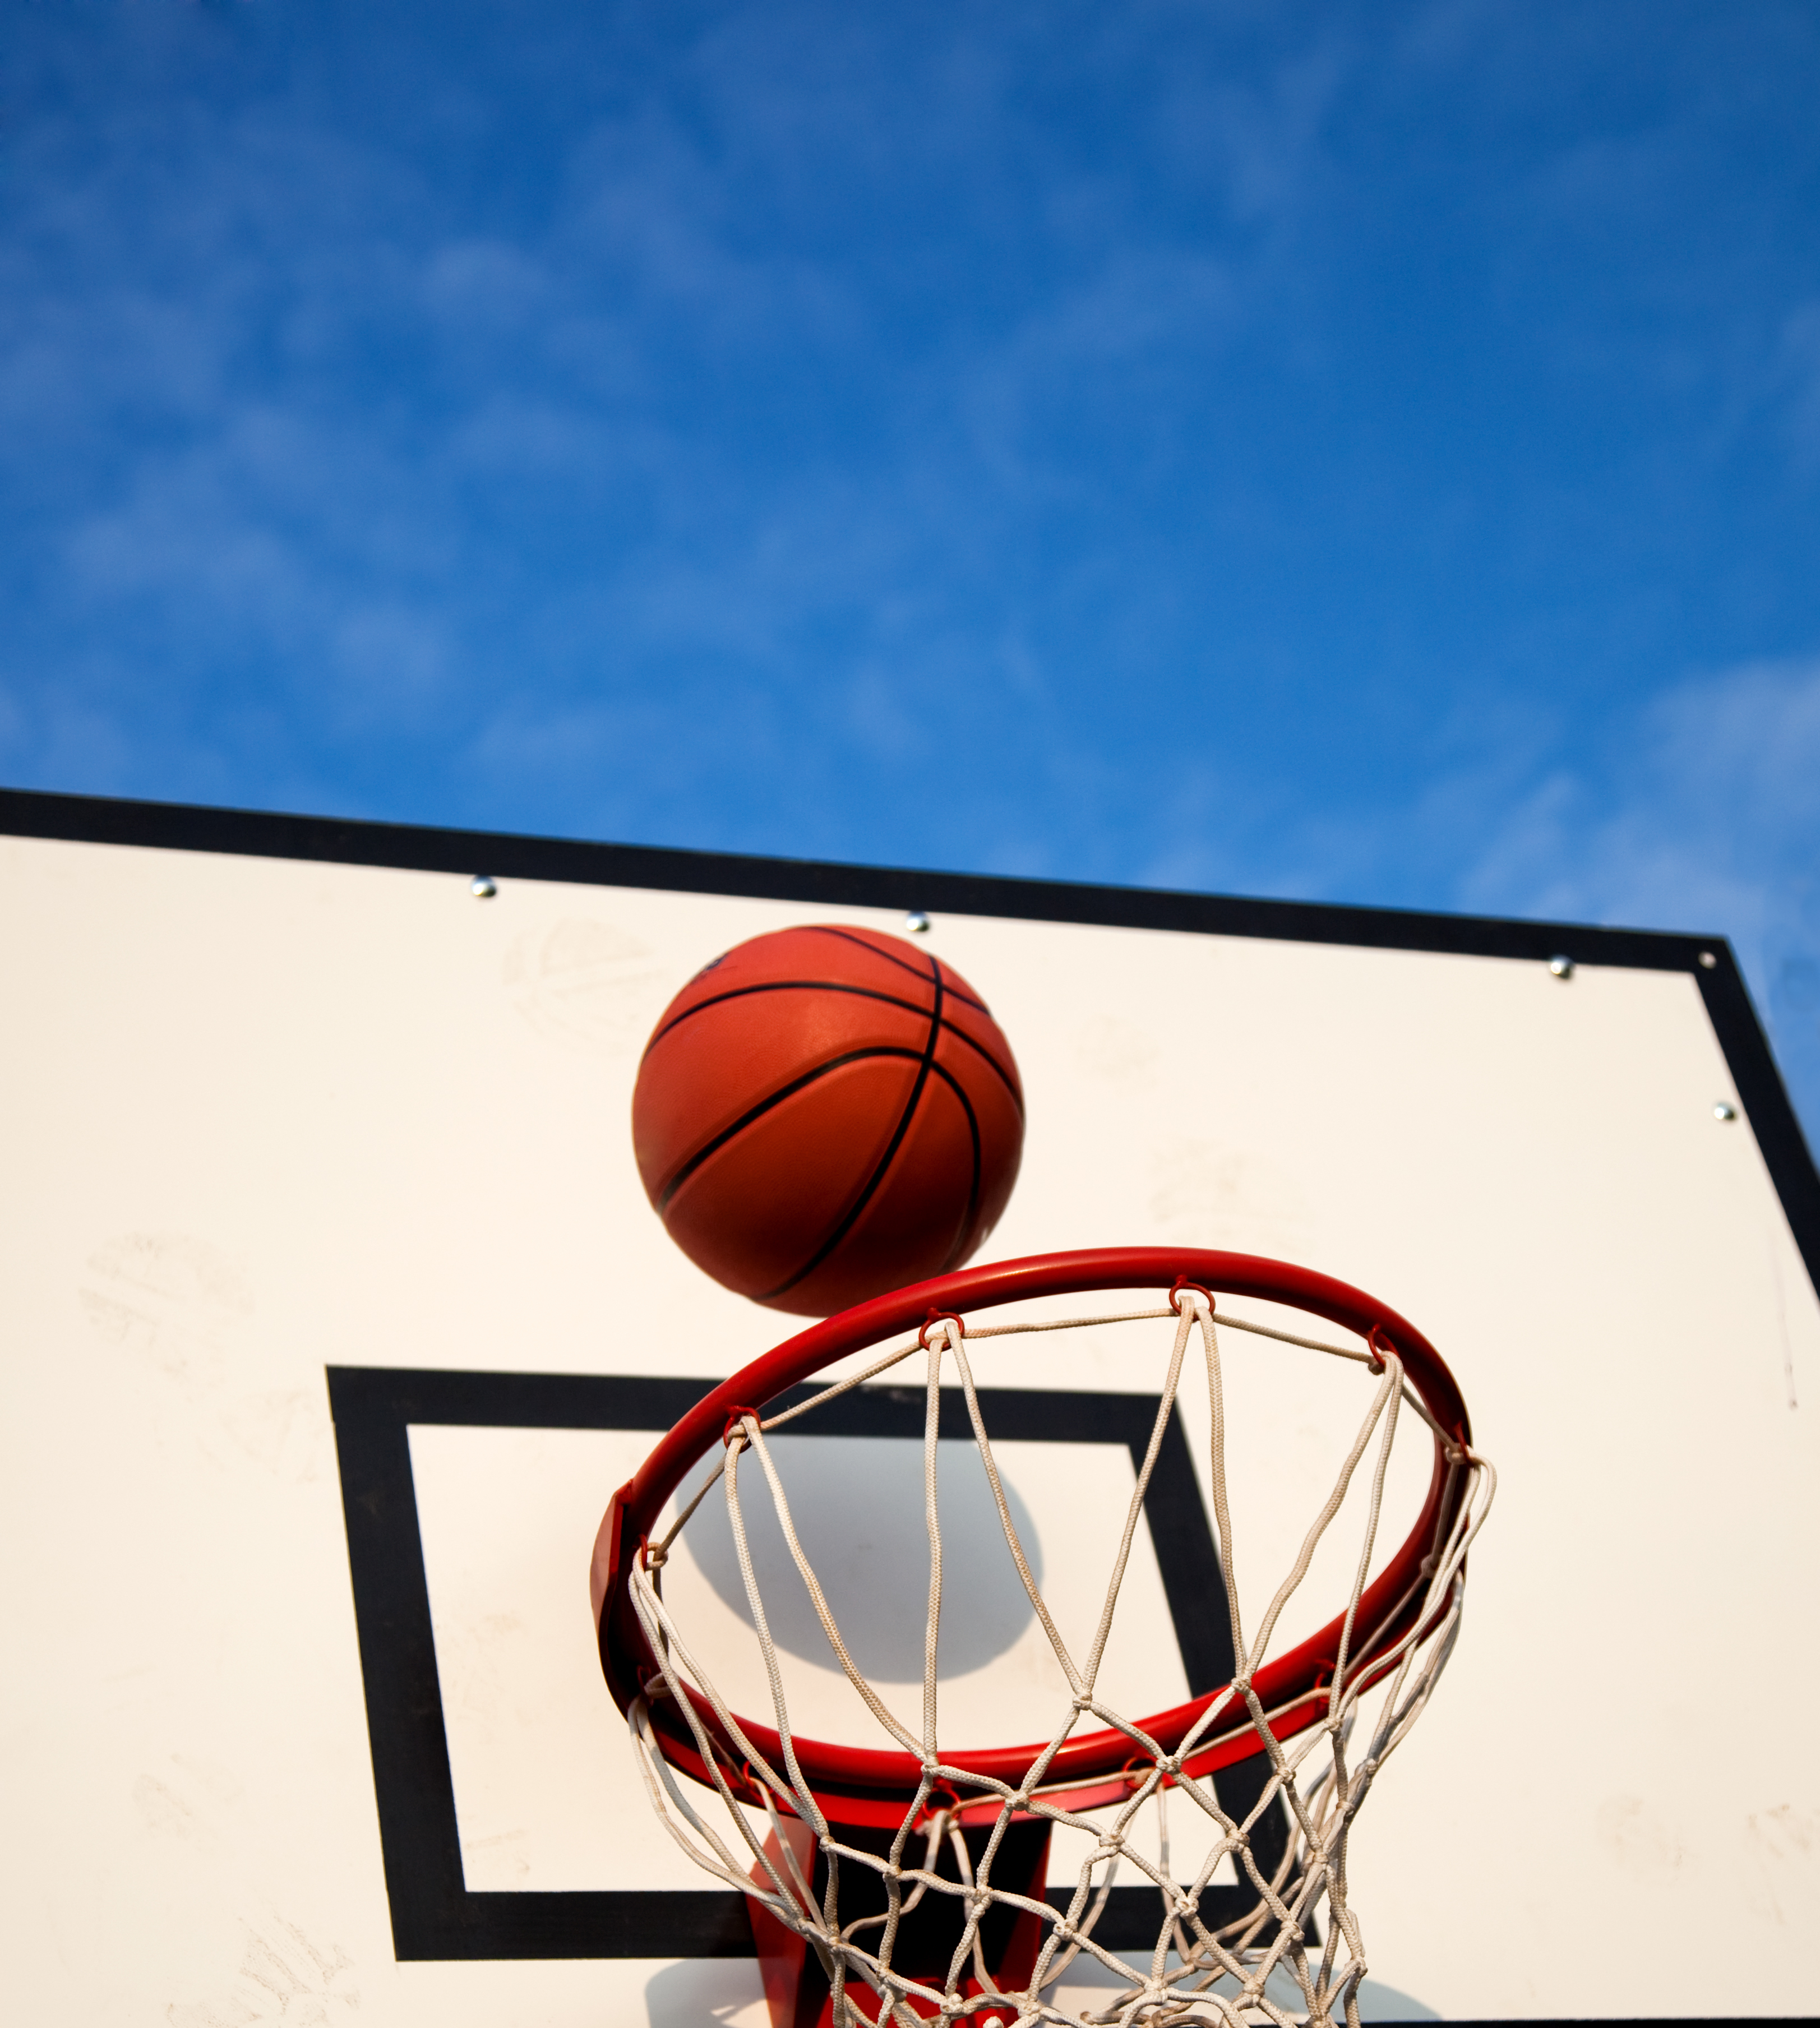 Basketball rings & backboards | Product Safety Australia